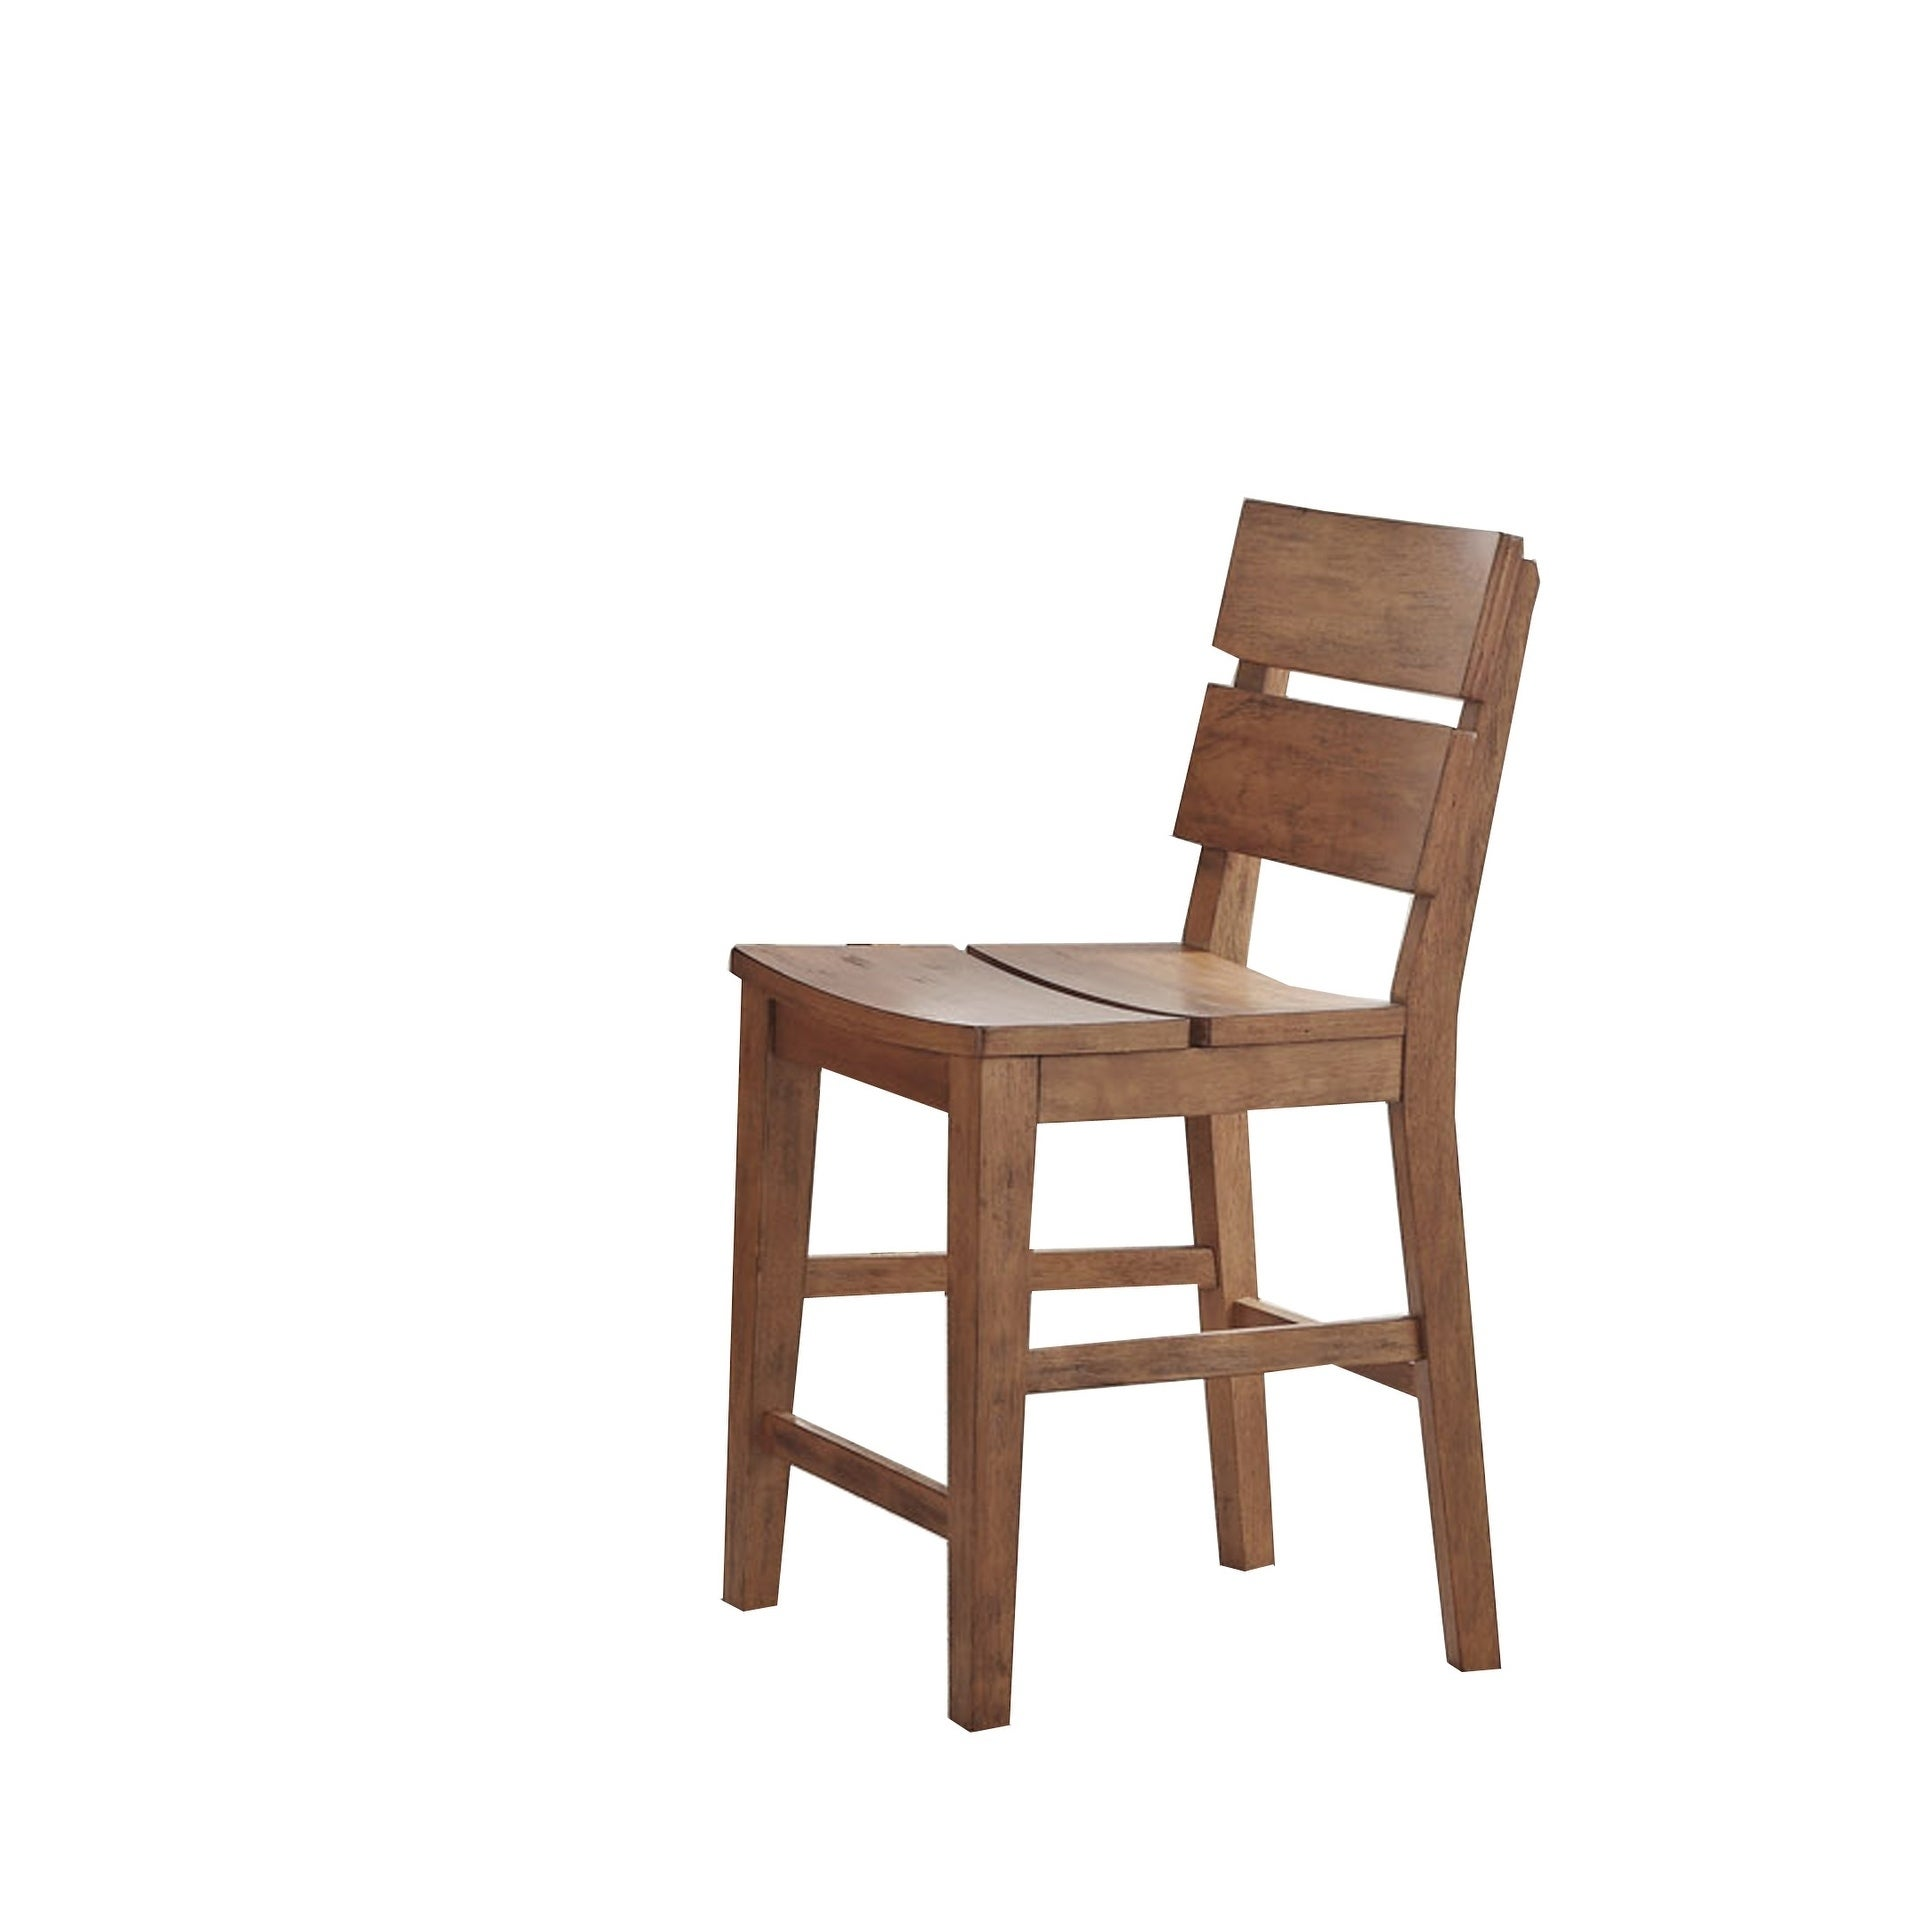 Shop whitaker furniture set of 2 shenandoah counter stools free shipping today overstock com 17755519